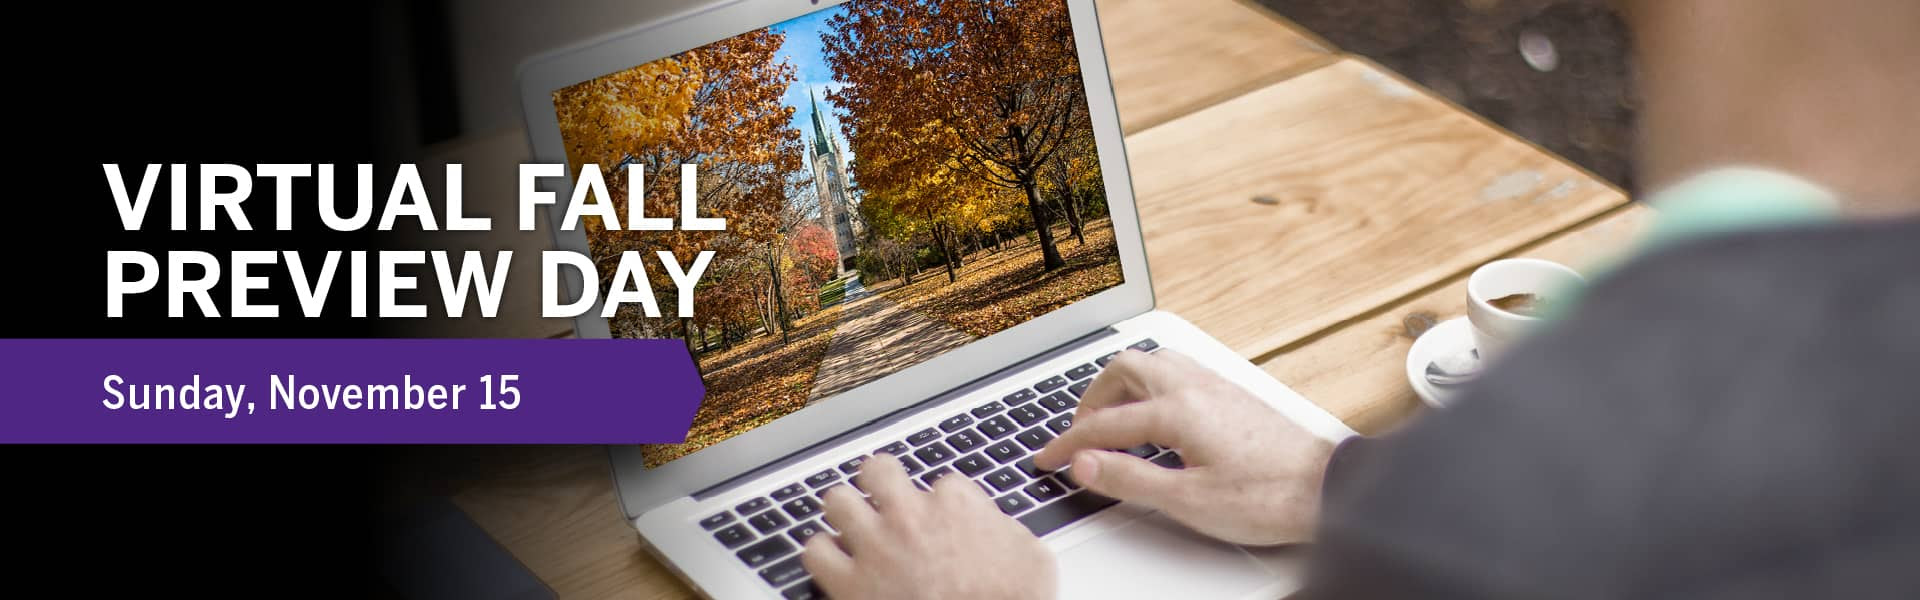 Virtual Fall Preview Day